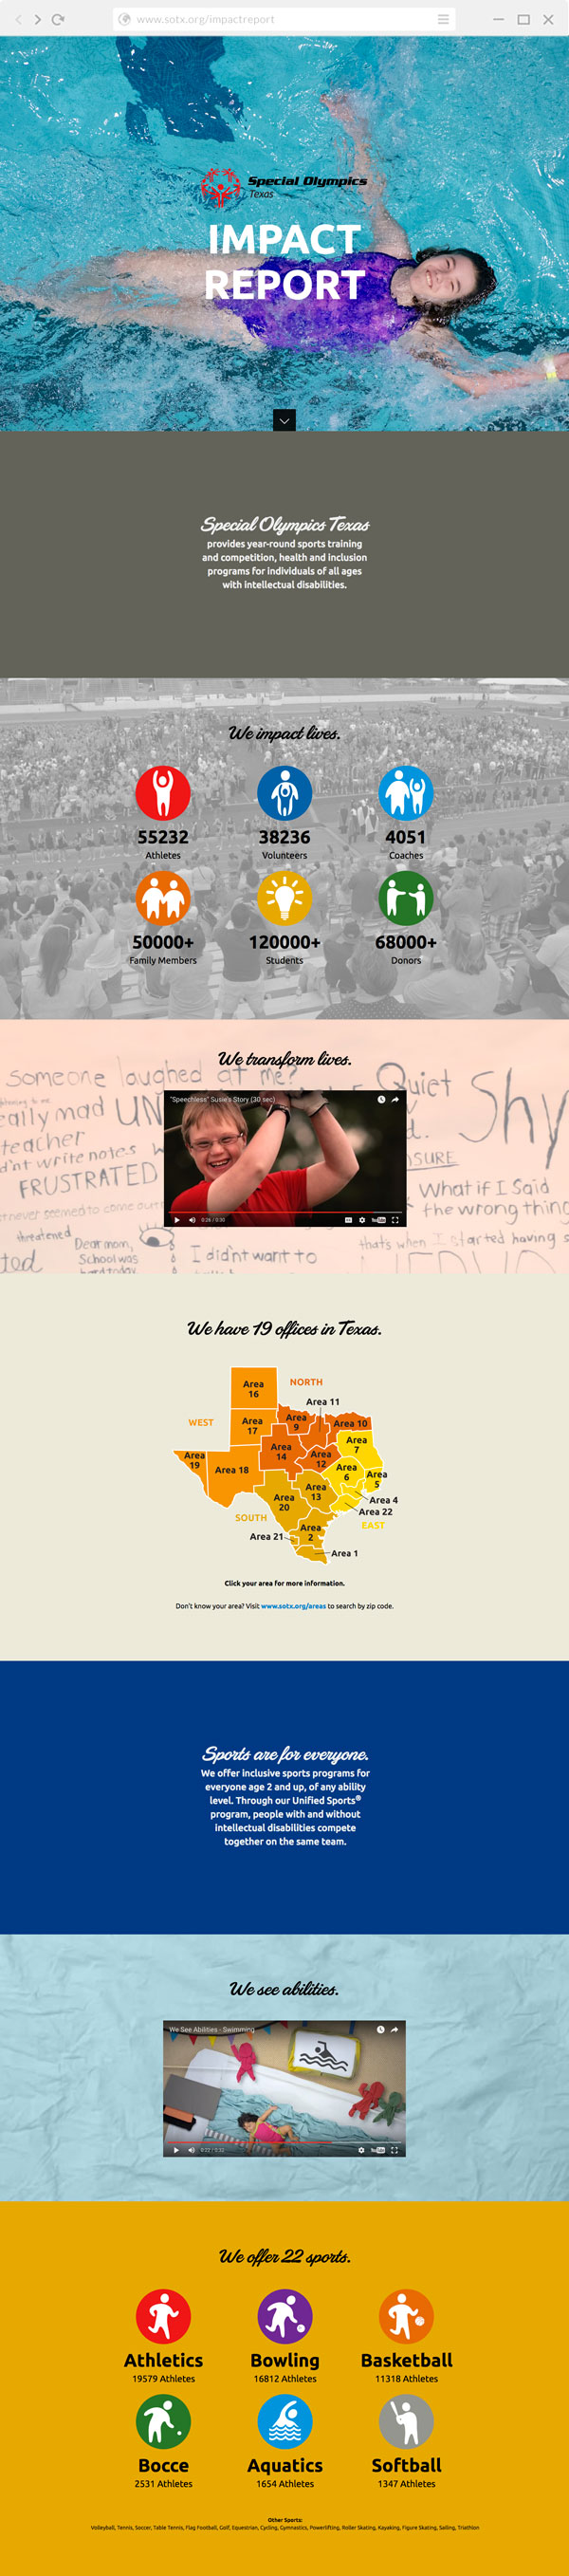 Special Olympics Texas impact report single page website by Kara Fuhlbrugge